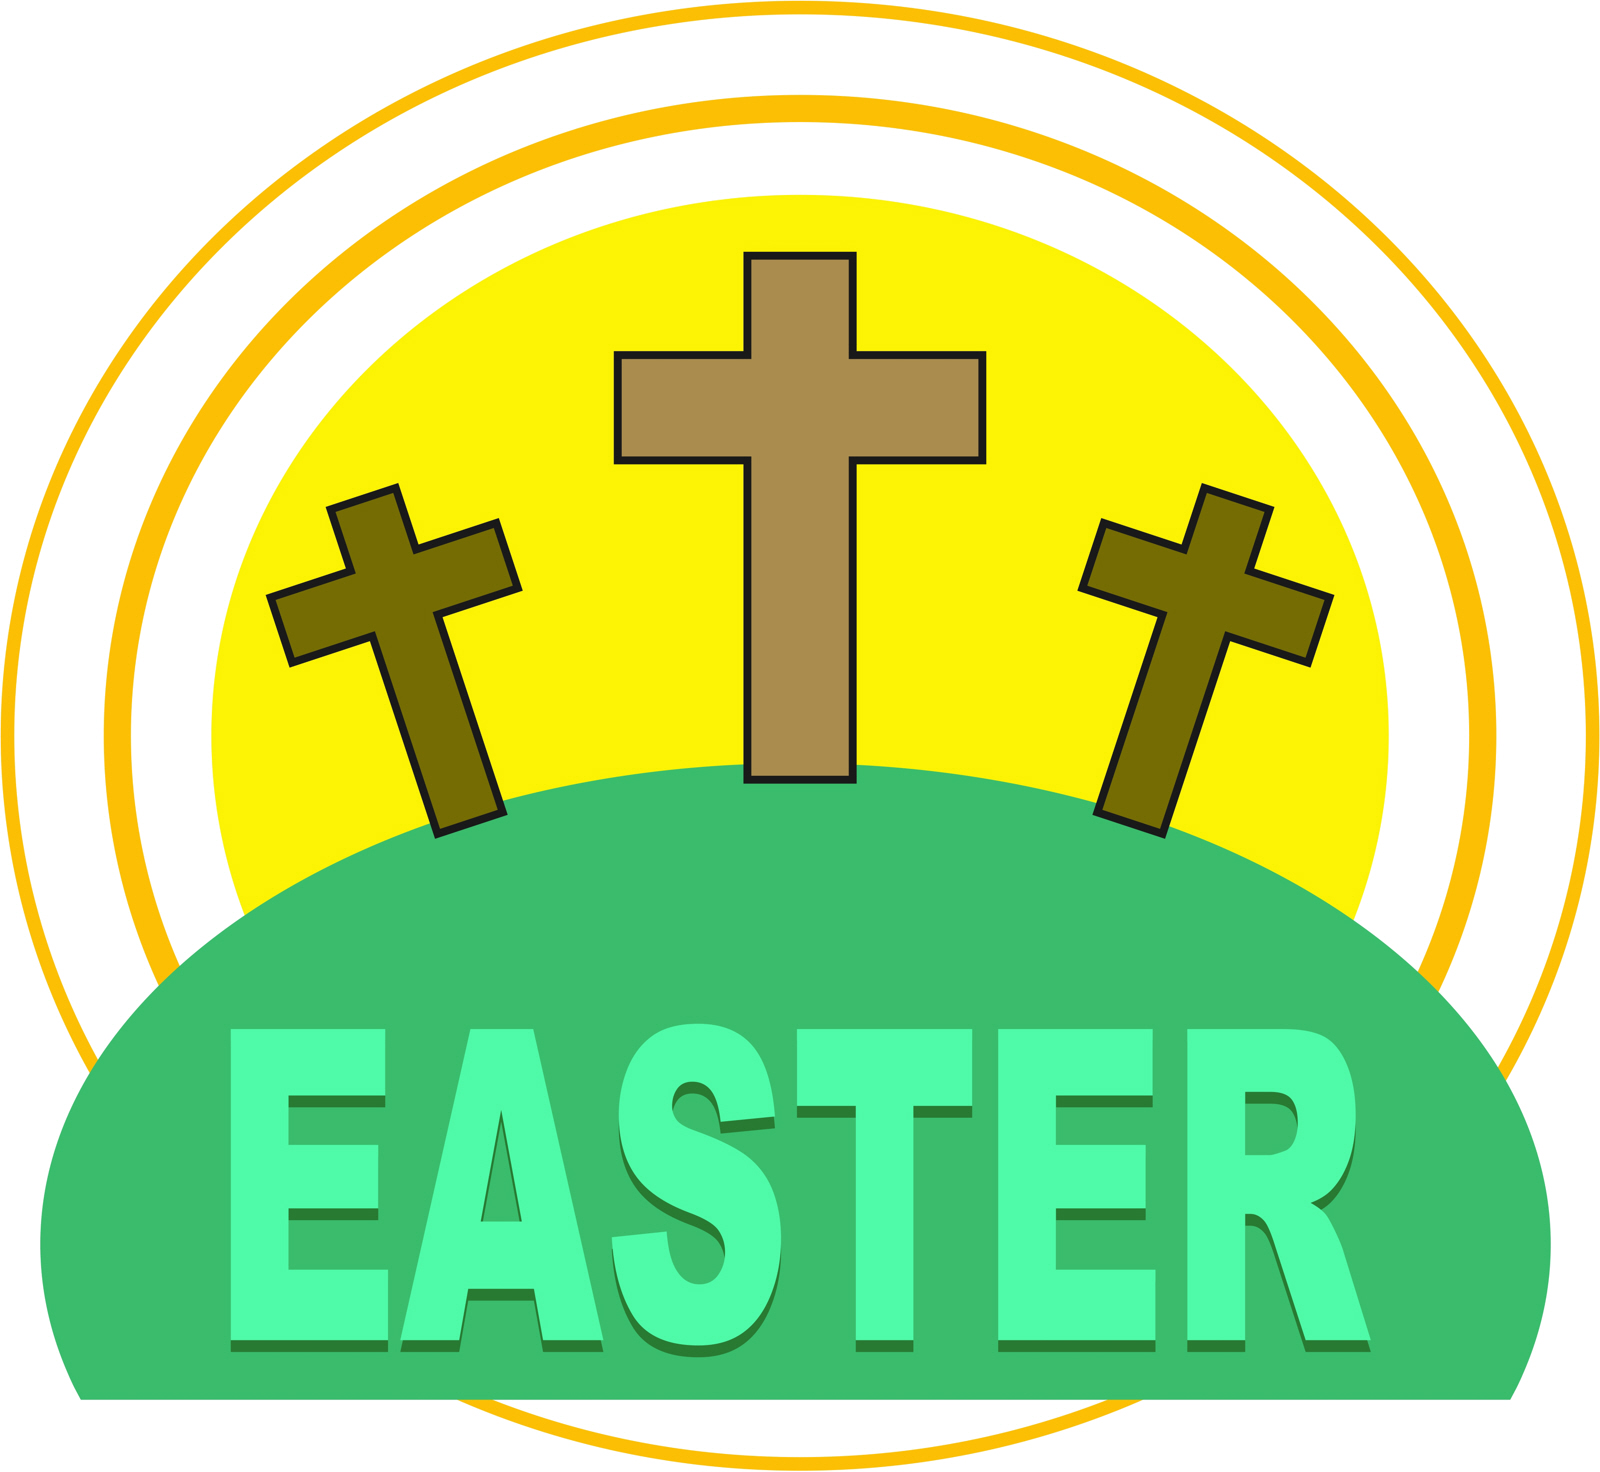 Free photo: Easter Cross Clipart.